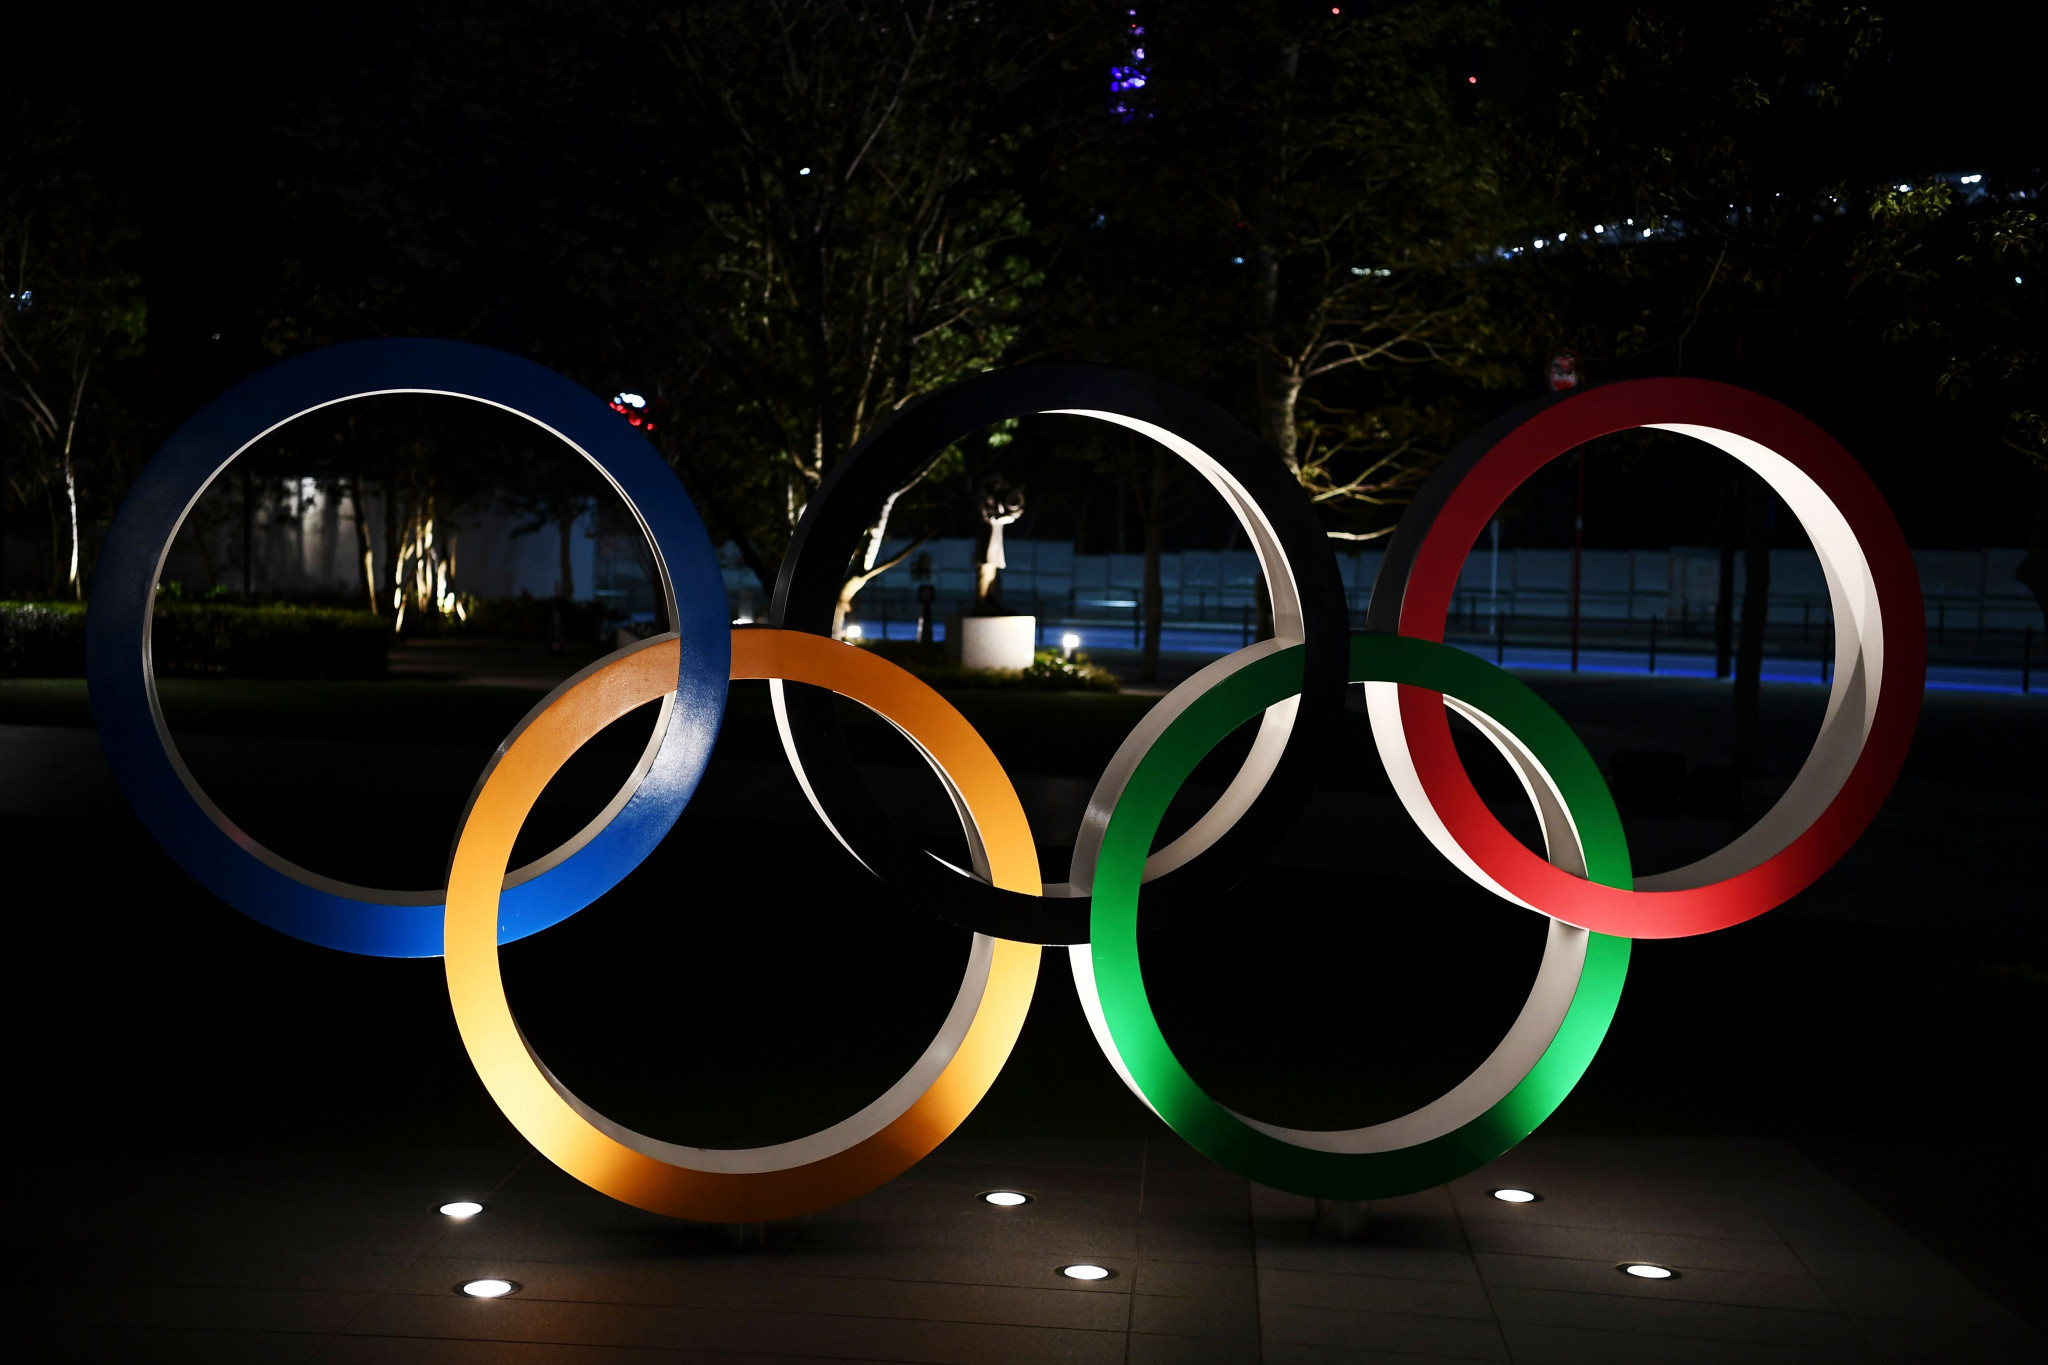 DELAYED TOKYO 2020 OLYMPIC GAMES TO COST AN ADDITIONAL $2.5 BILLION